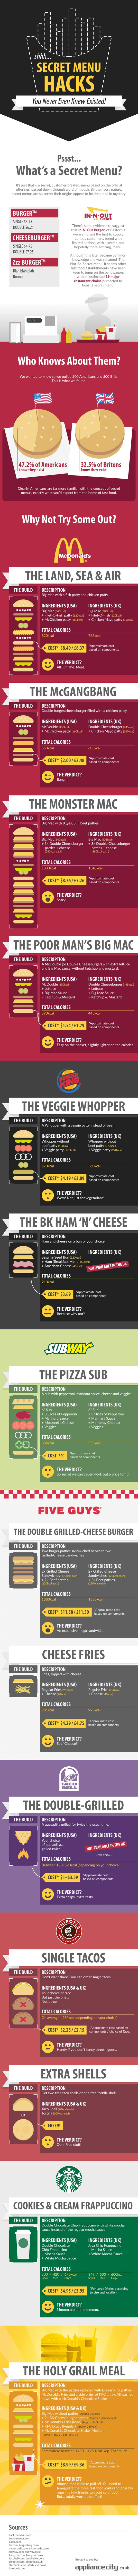 Infographic: Secret Fast Food Menus You Never Knew Existed